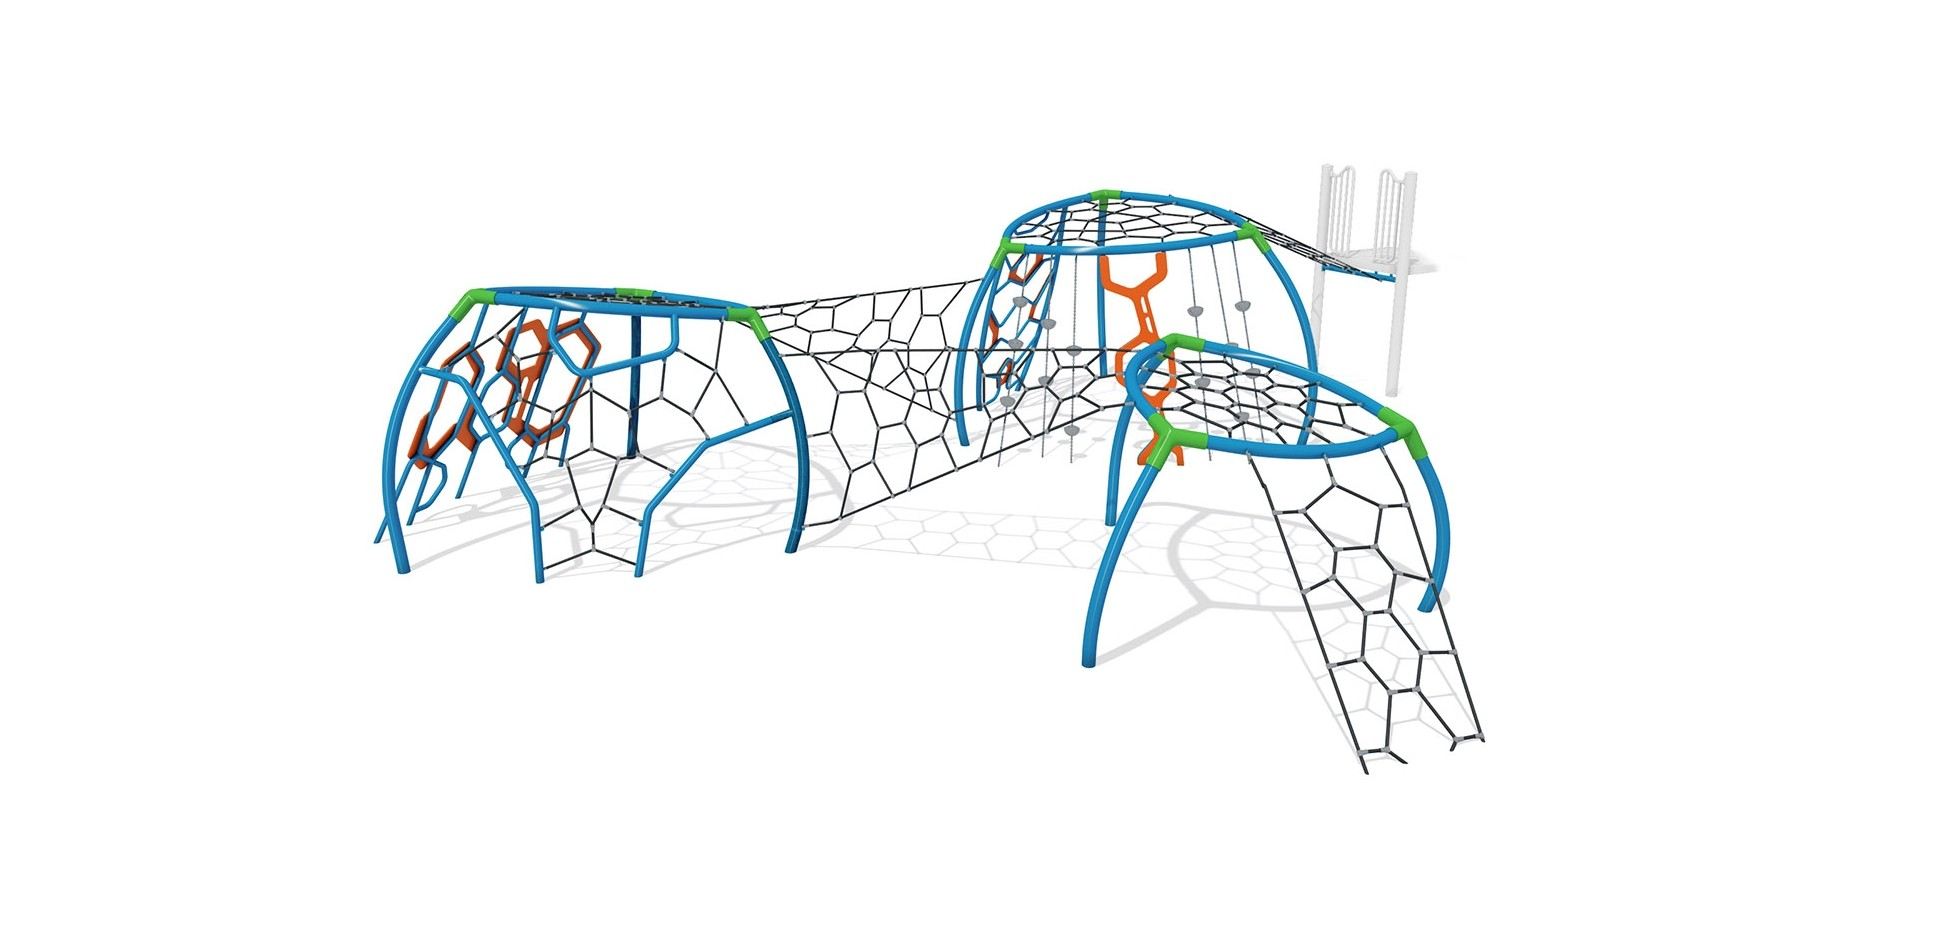 TriNet (Small, Medium and Large) with Twisted Nets and PowerScape Connection